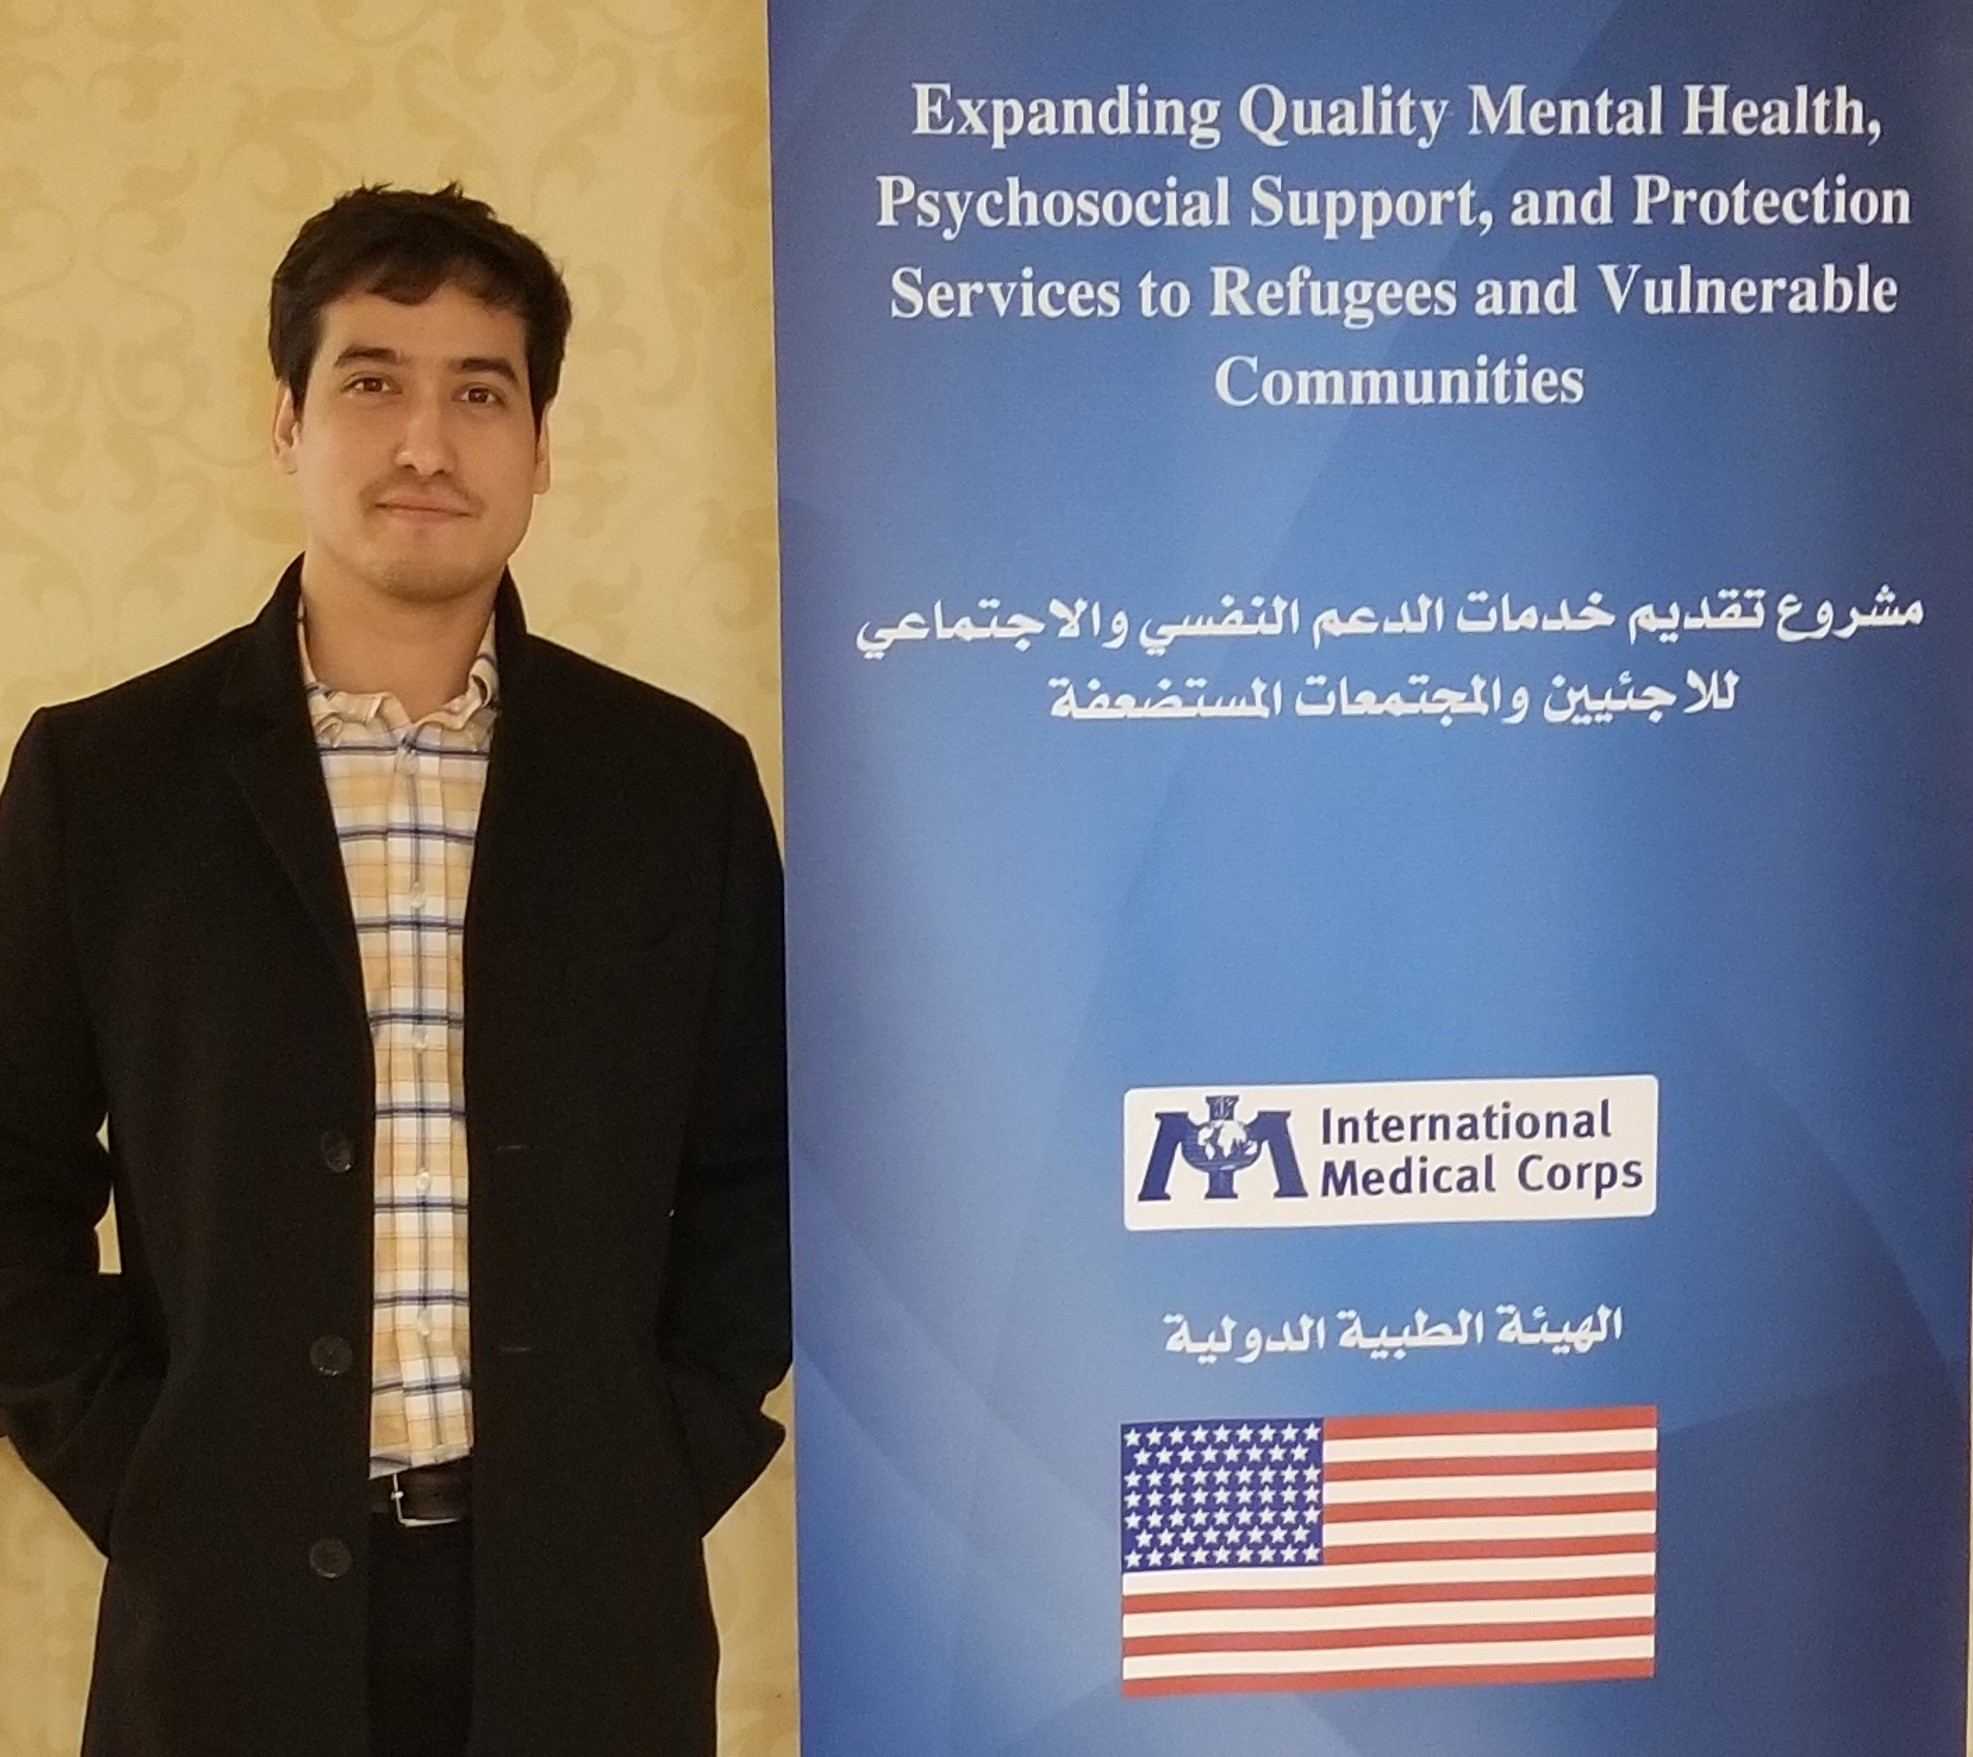 At the IMC confrence on on mental health and psychosocial support services among refugees and vulnerable Jordanians.